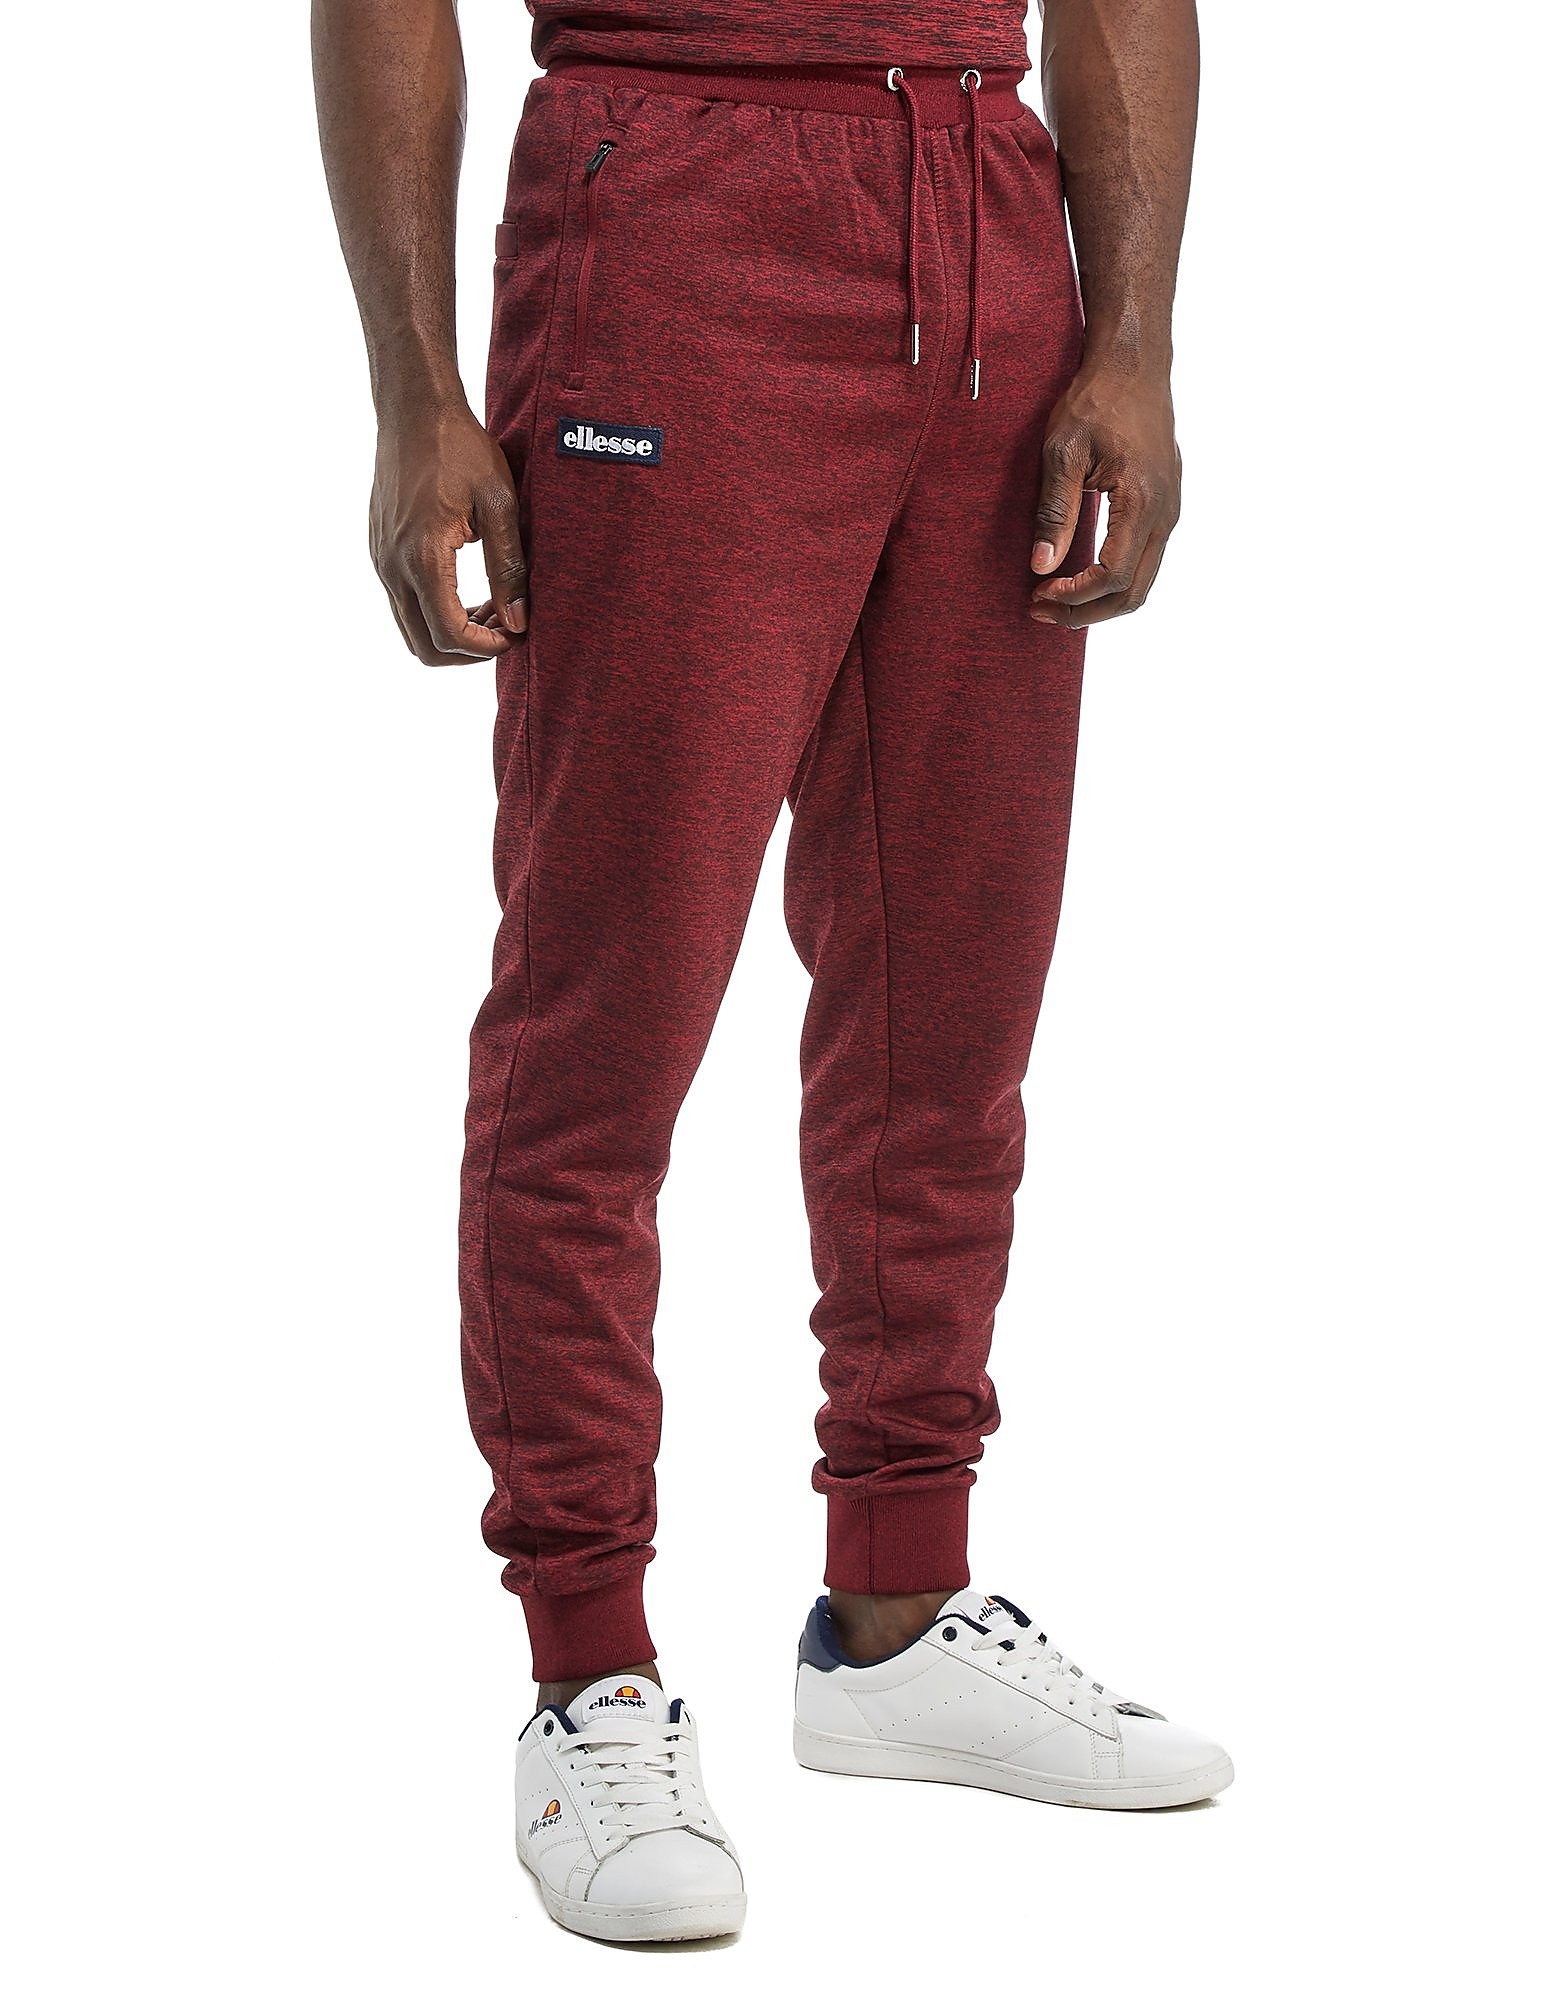 Ellesse Giardello Pants - Deep Red, Deep Red